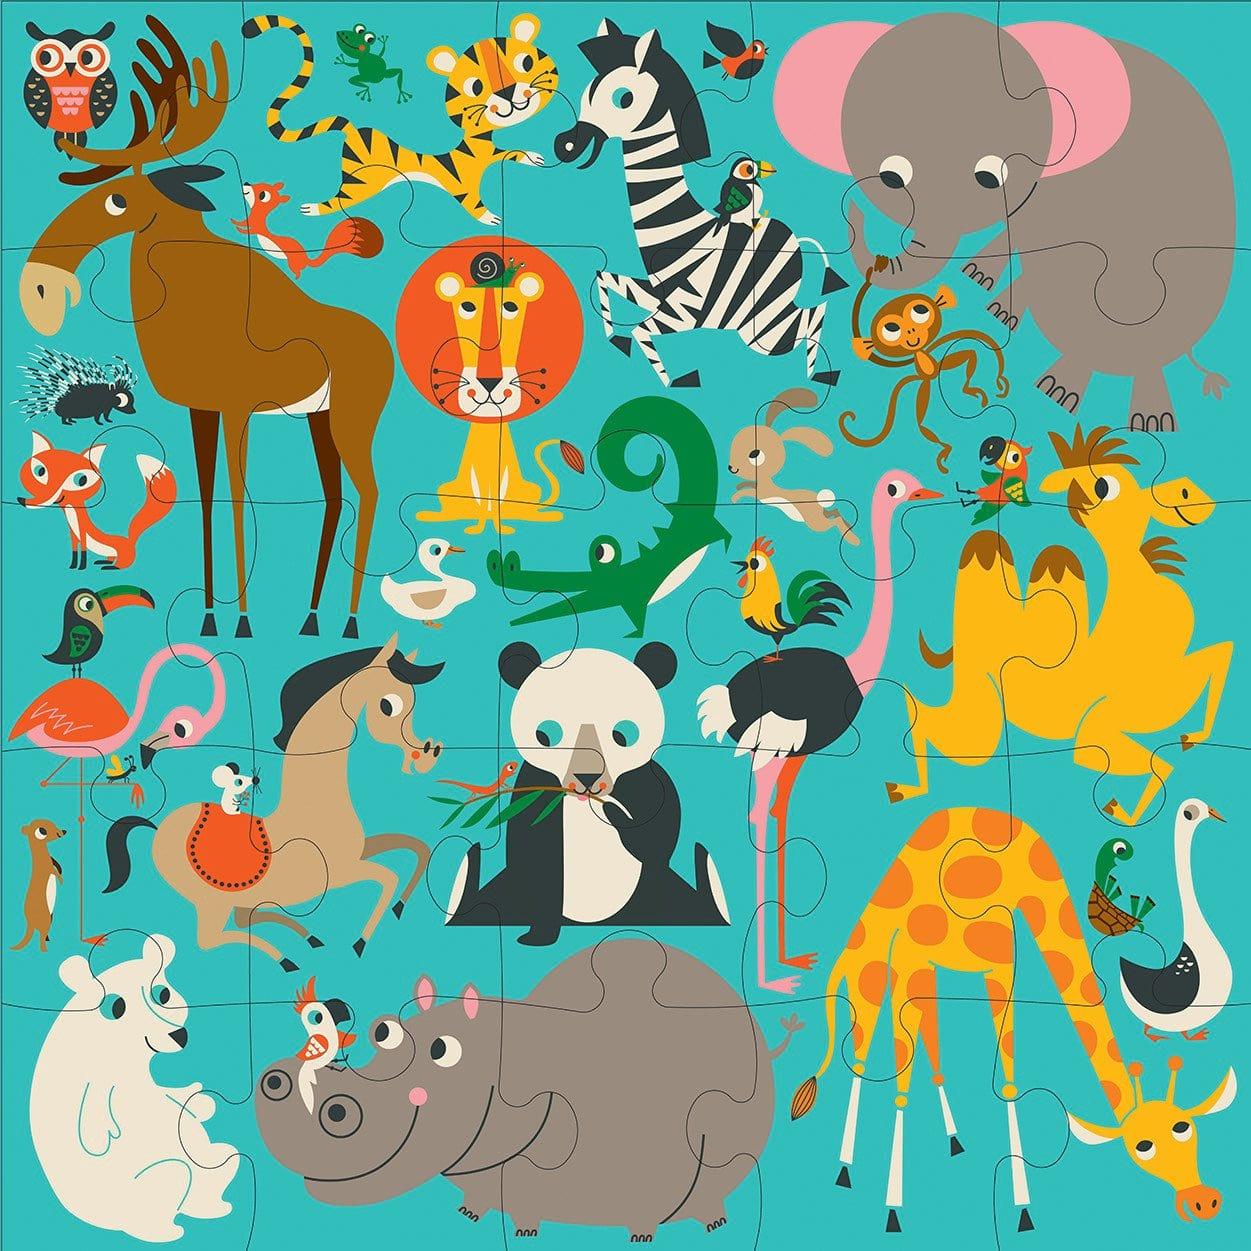 Animals of the World JUMBO puzzle  - Villavillekula, llc - Philadelphia, PA